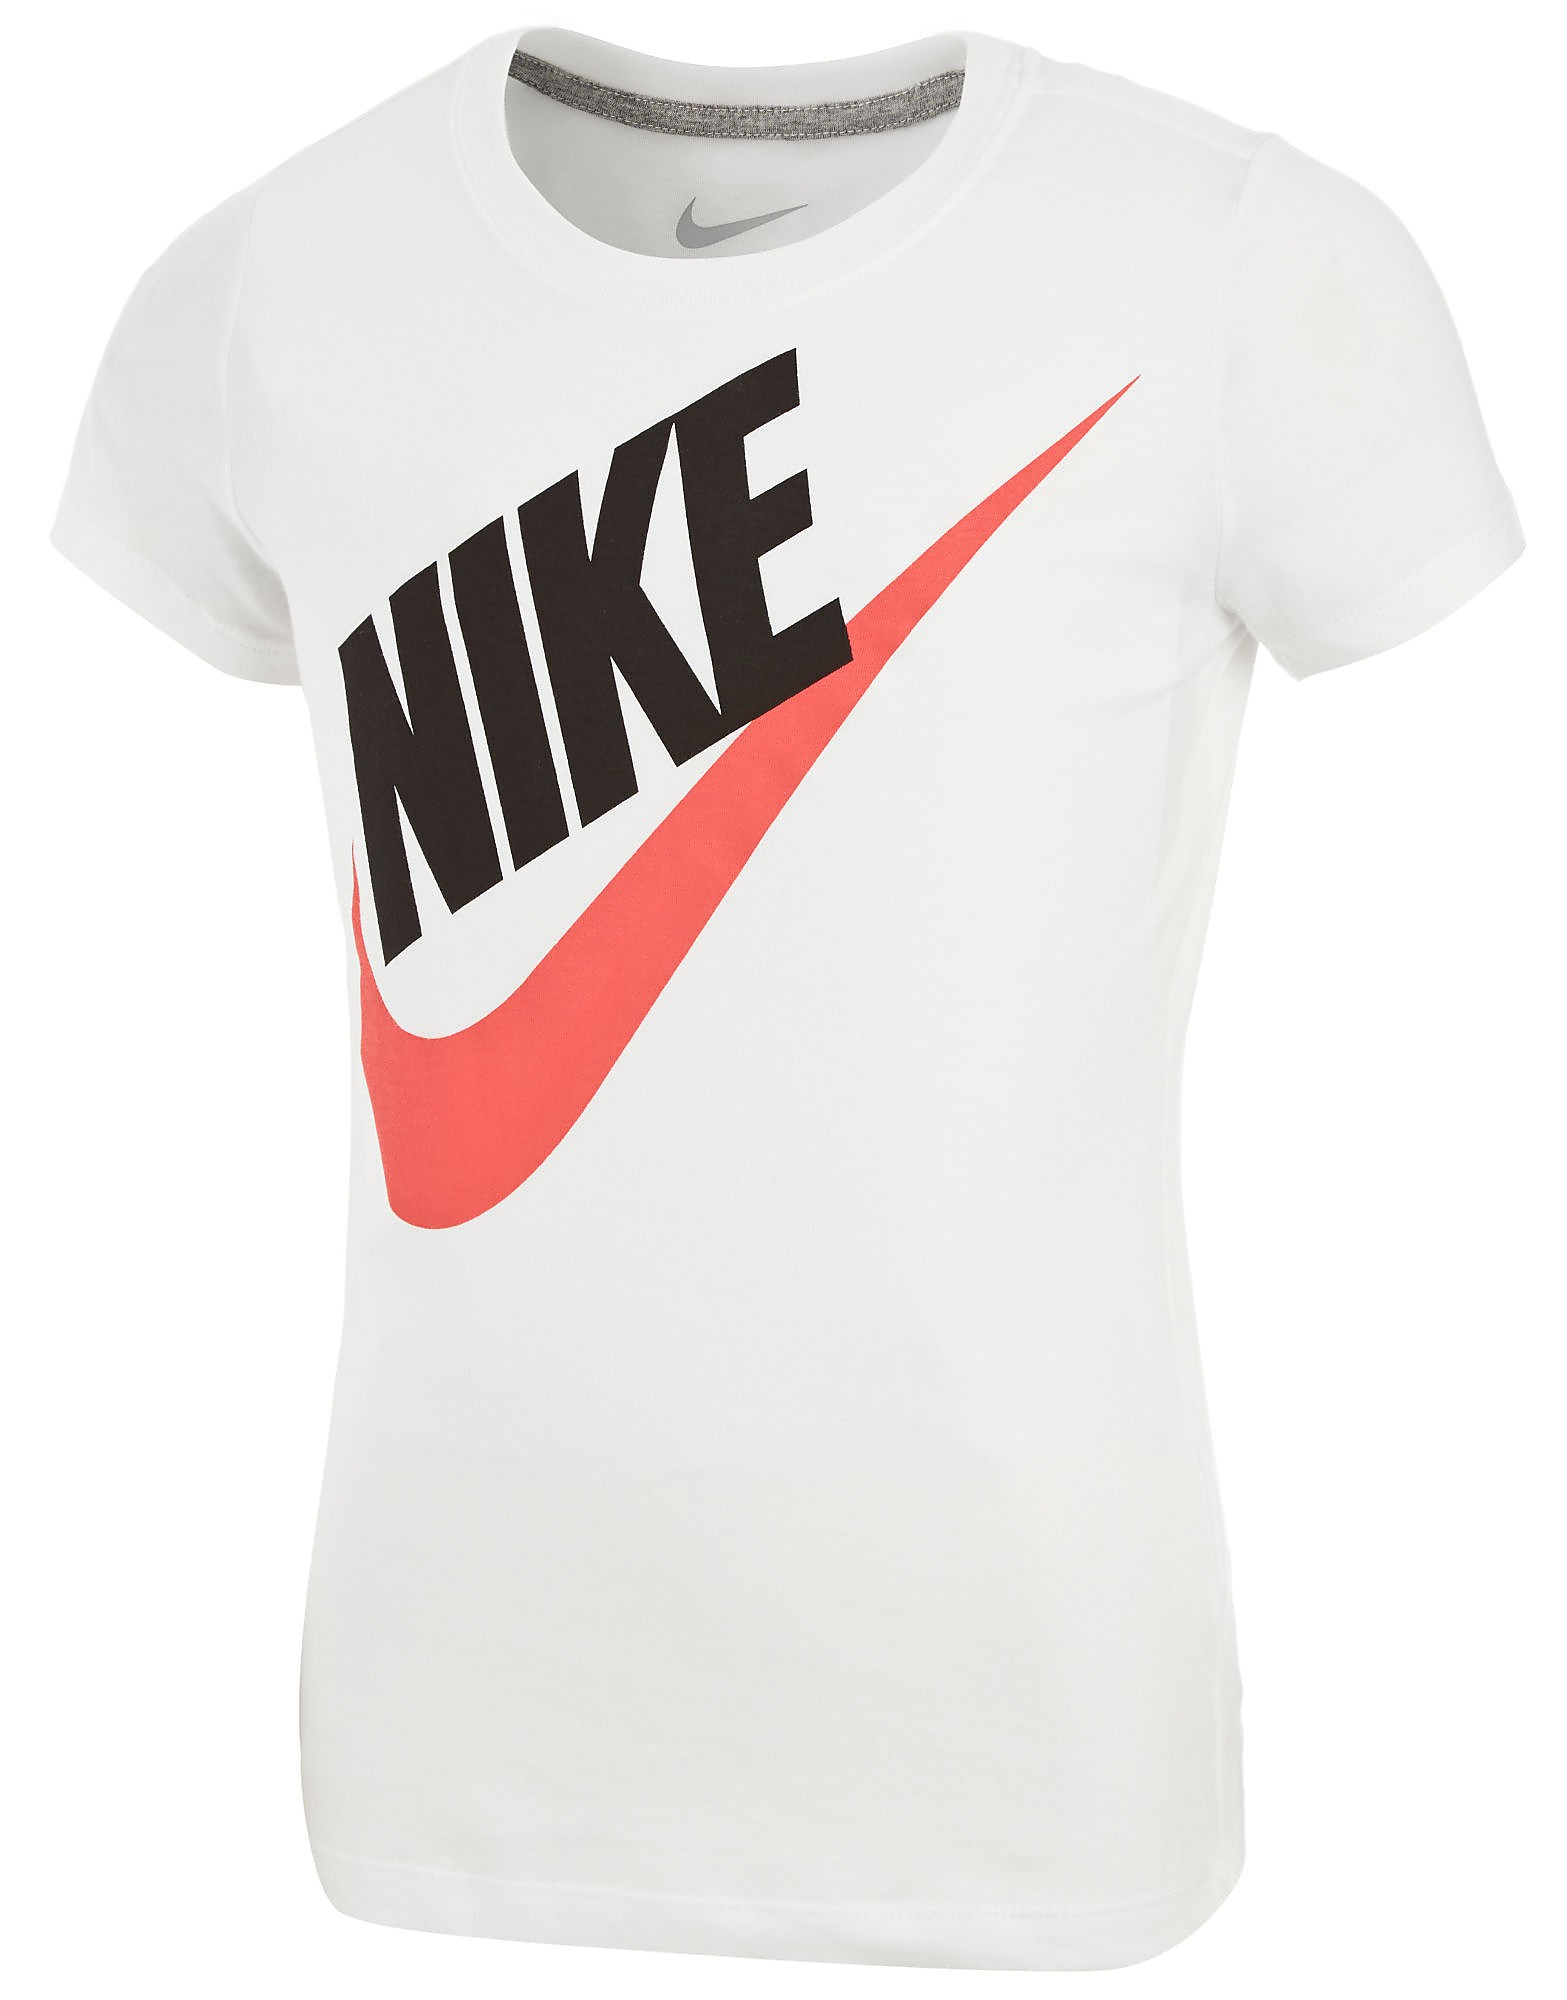 Nike Girls Corp T-Shirt Junior product image